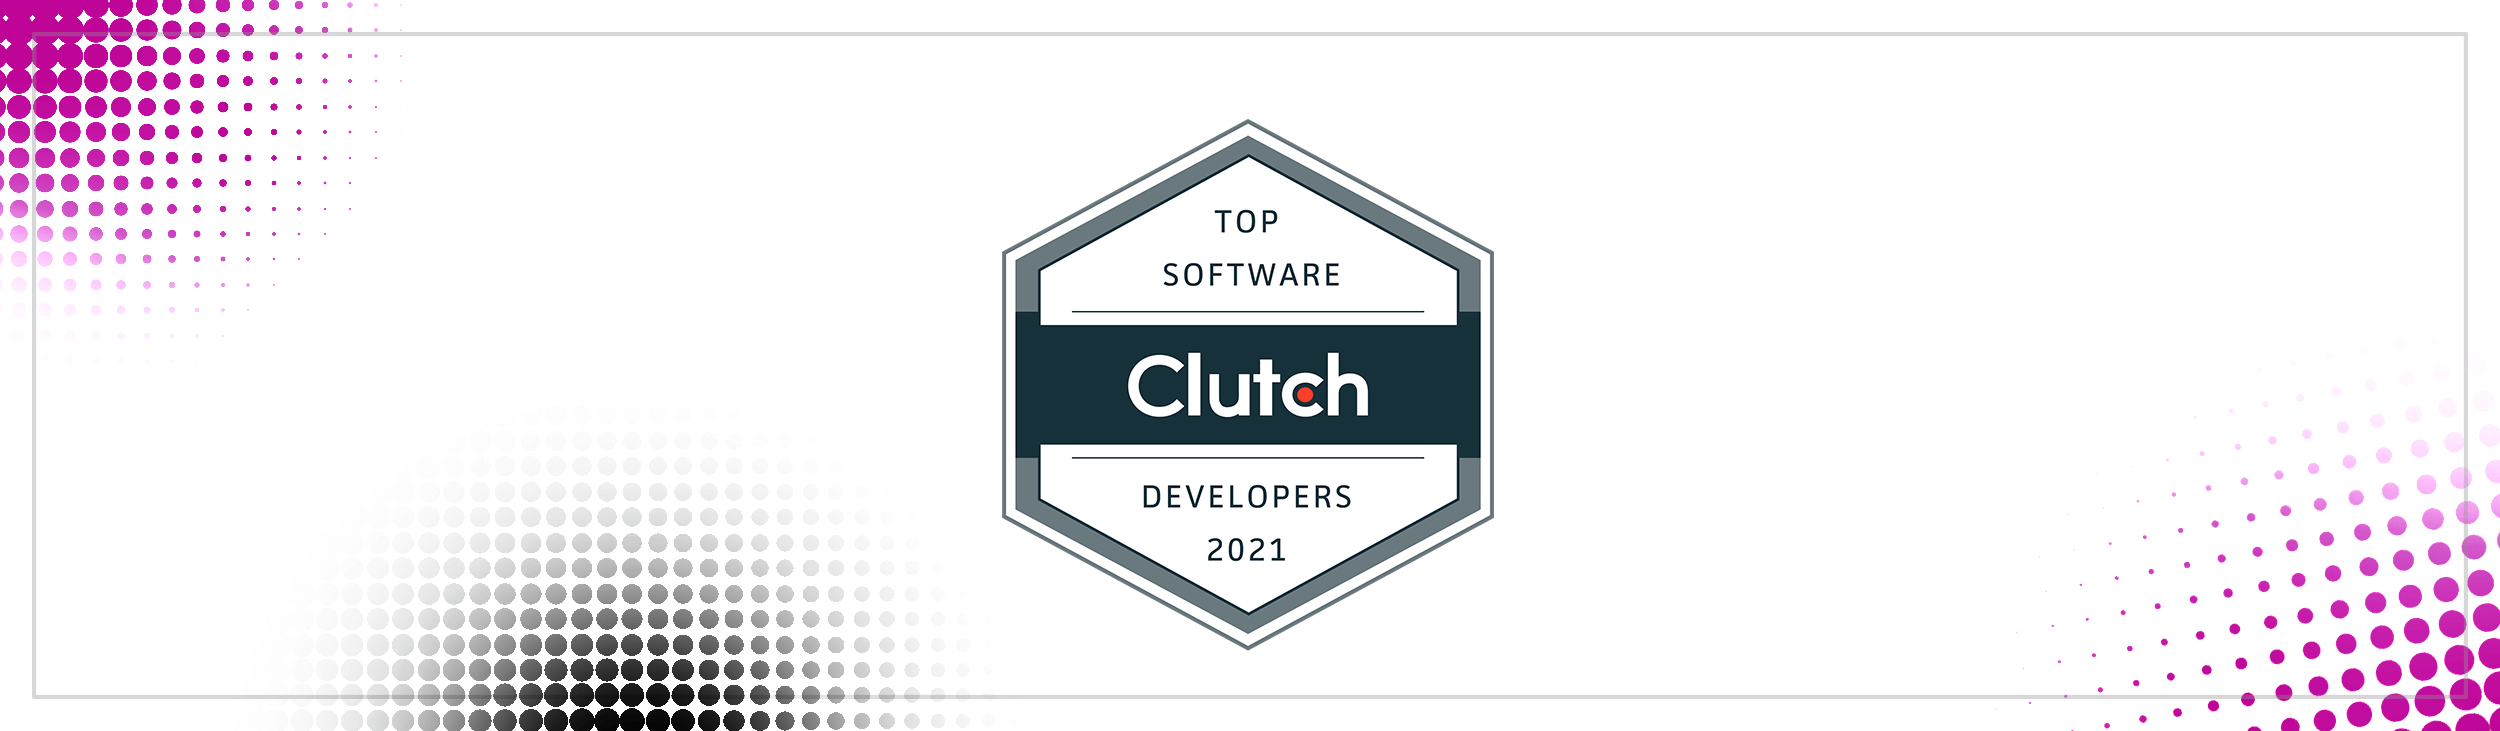 Clutch Top Software Developers 2021